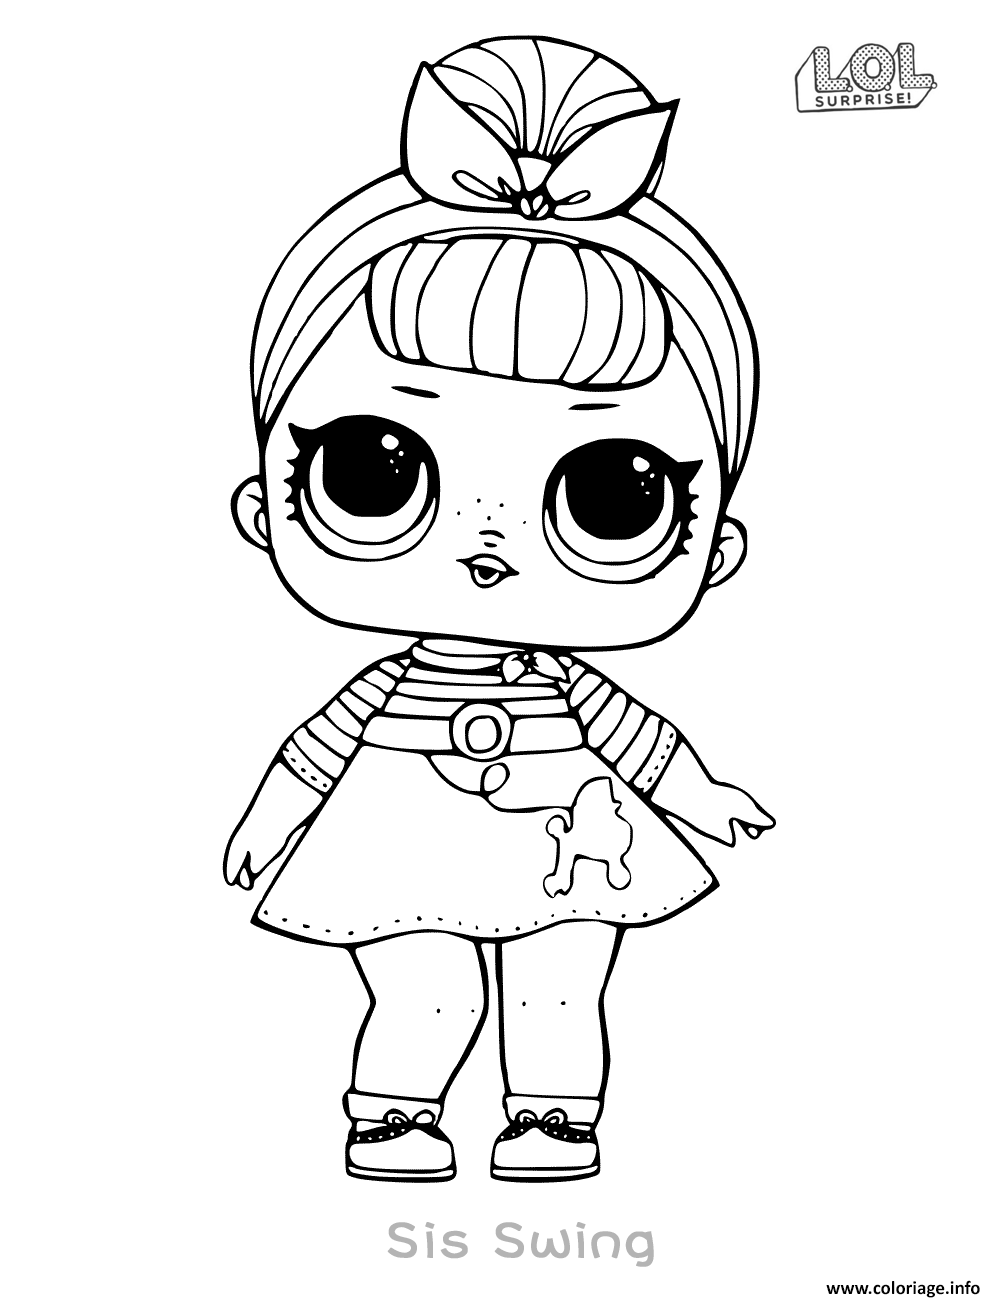 Dessin Poupee LOL Surprise Doll Sis Swing Coloriage Gratuit à Imprimer